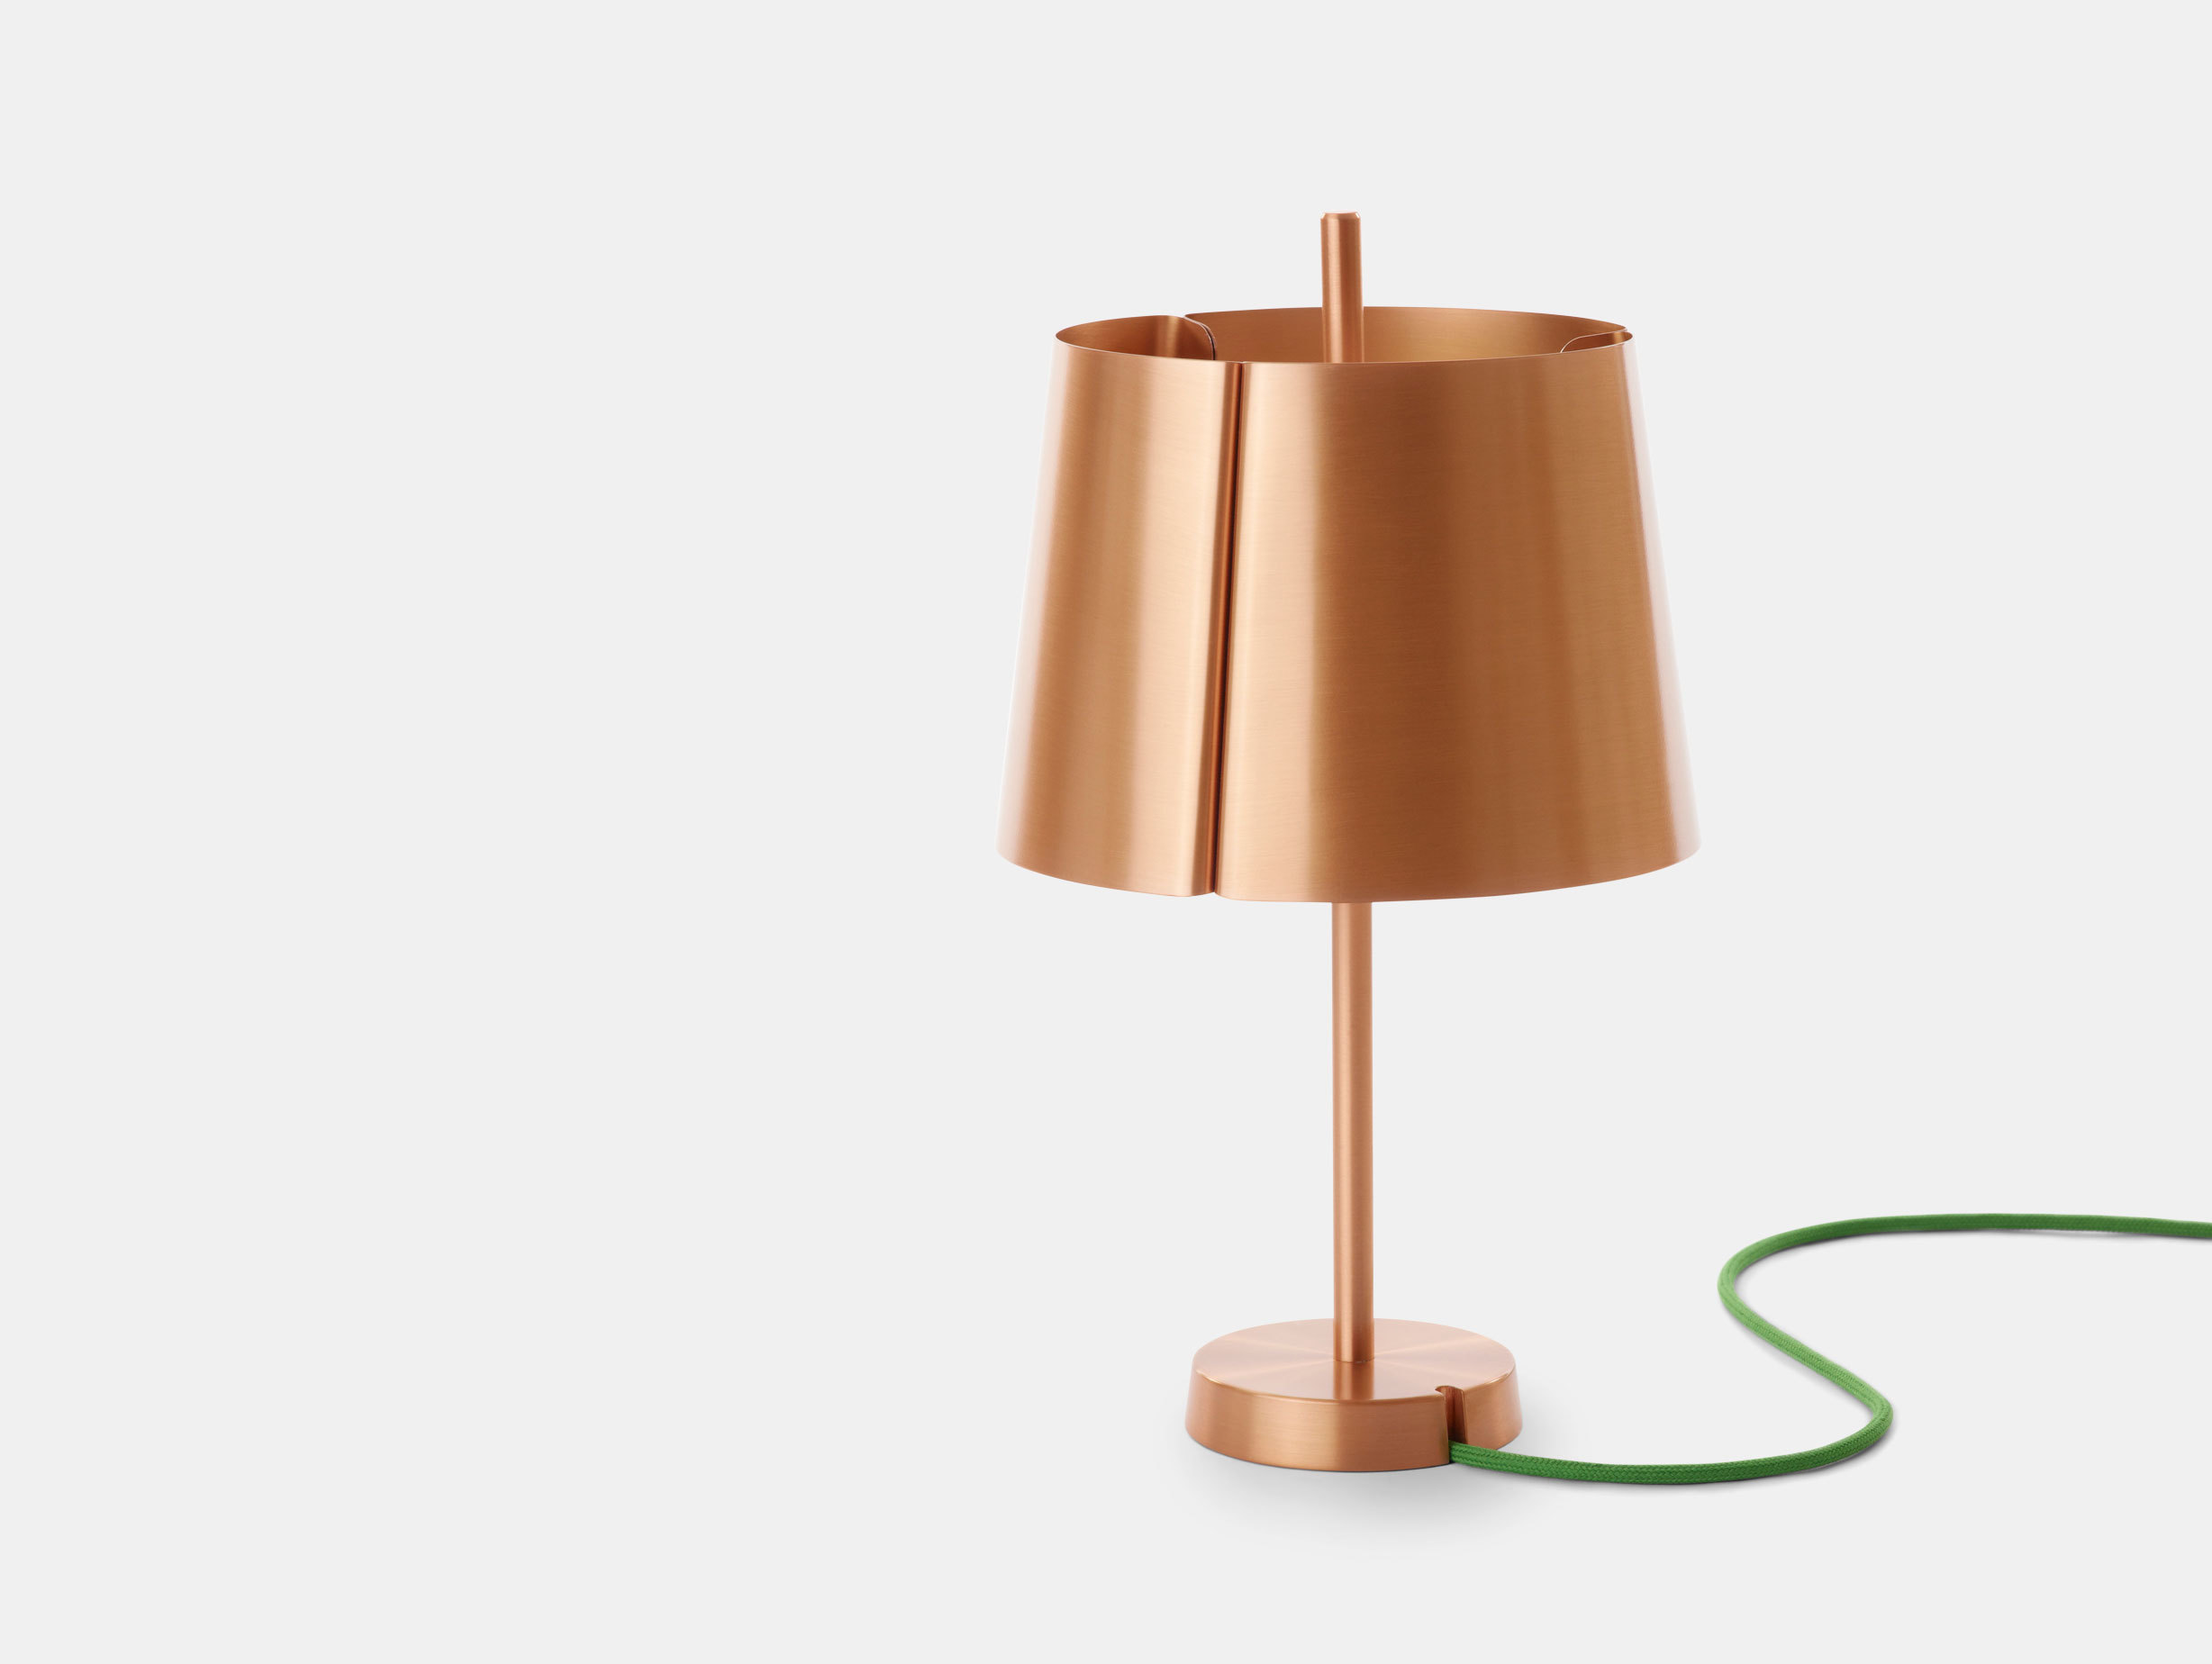 W124 Lindvall Table Lamp image 1